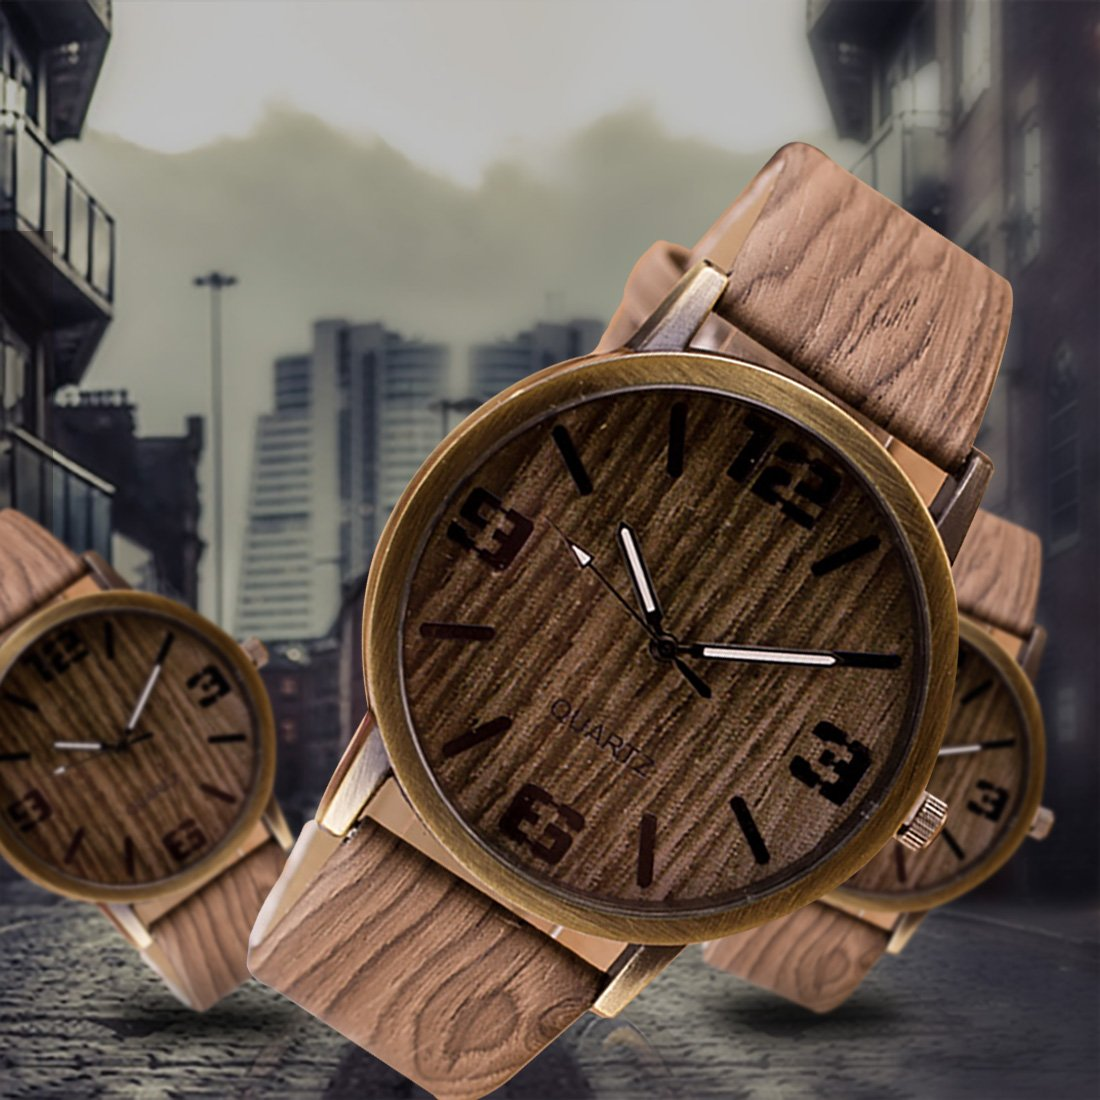 Amazon.com: 2016 Classical Wooden Watch Women Wristwatches Vintage Style Men Dress Watch Pu Leather Quartz Watch 5#: Watches